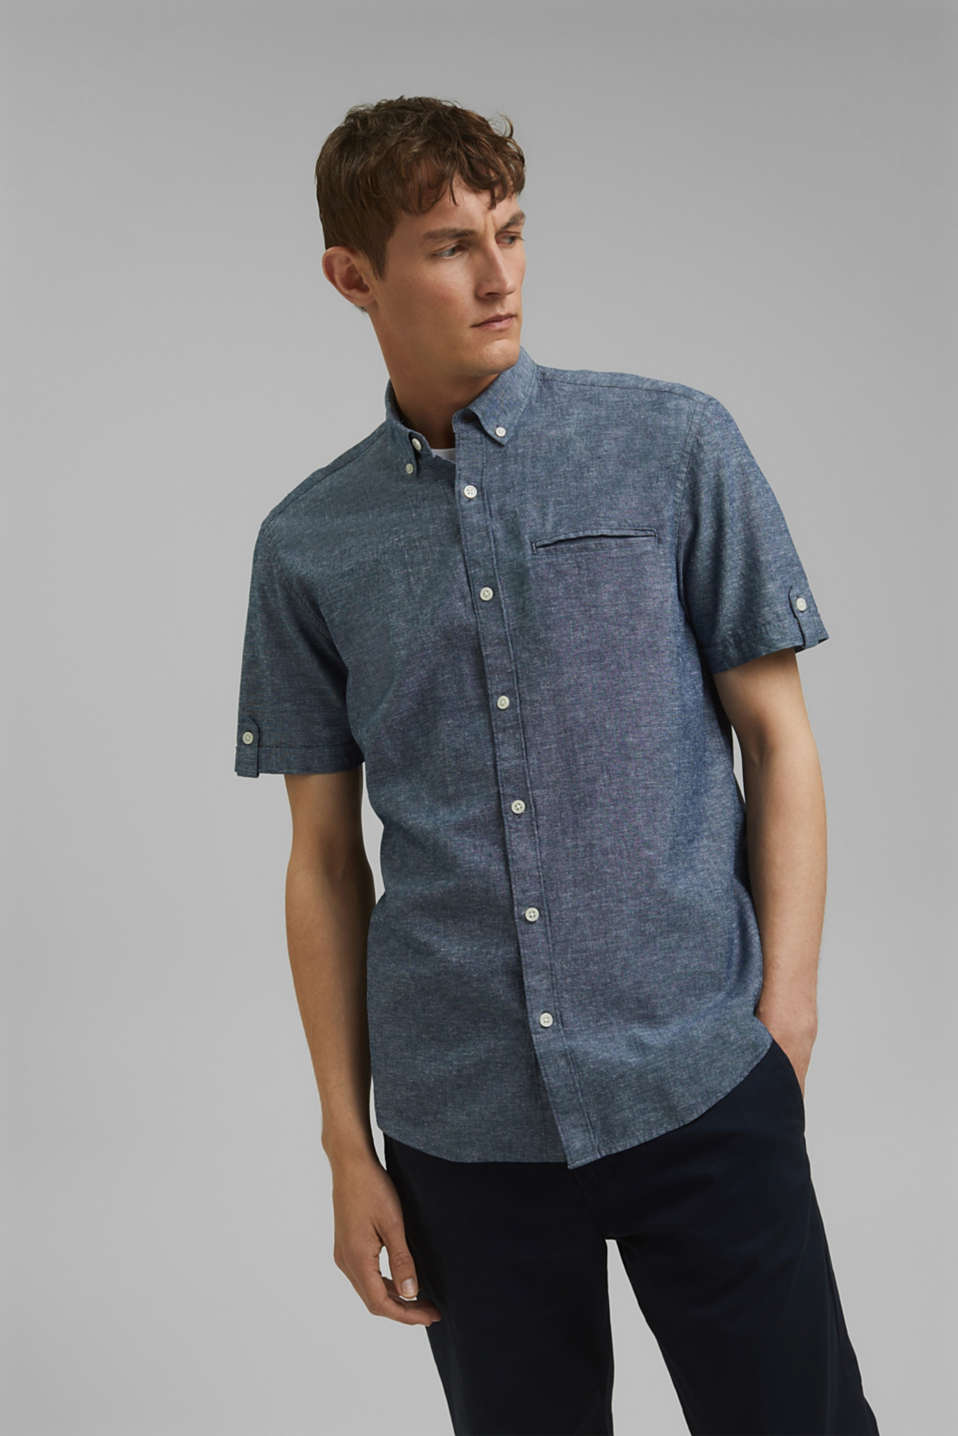 Esprit - With linen: short-sleeved shirt